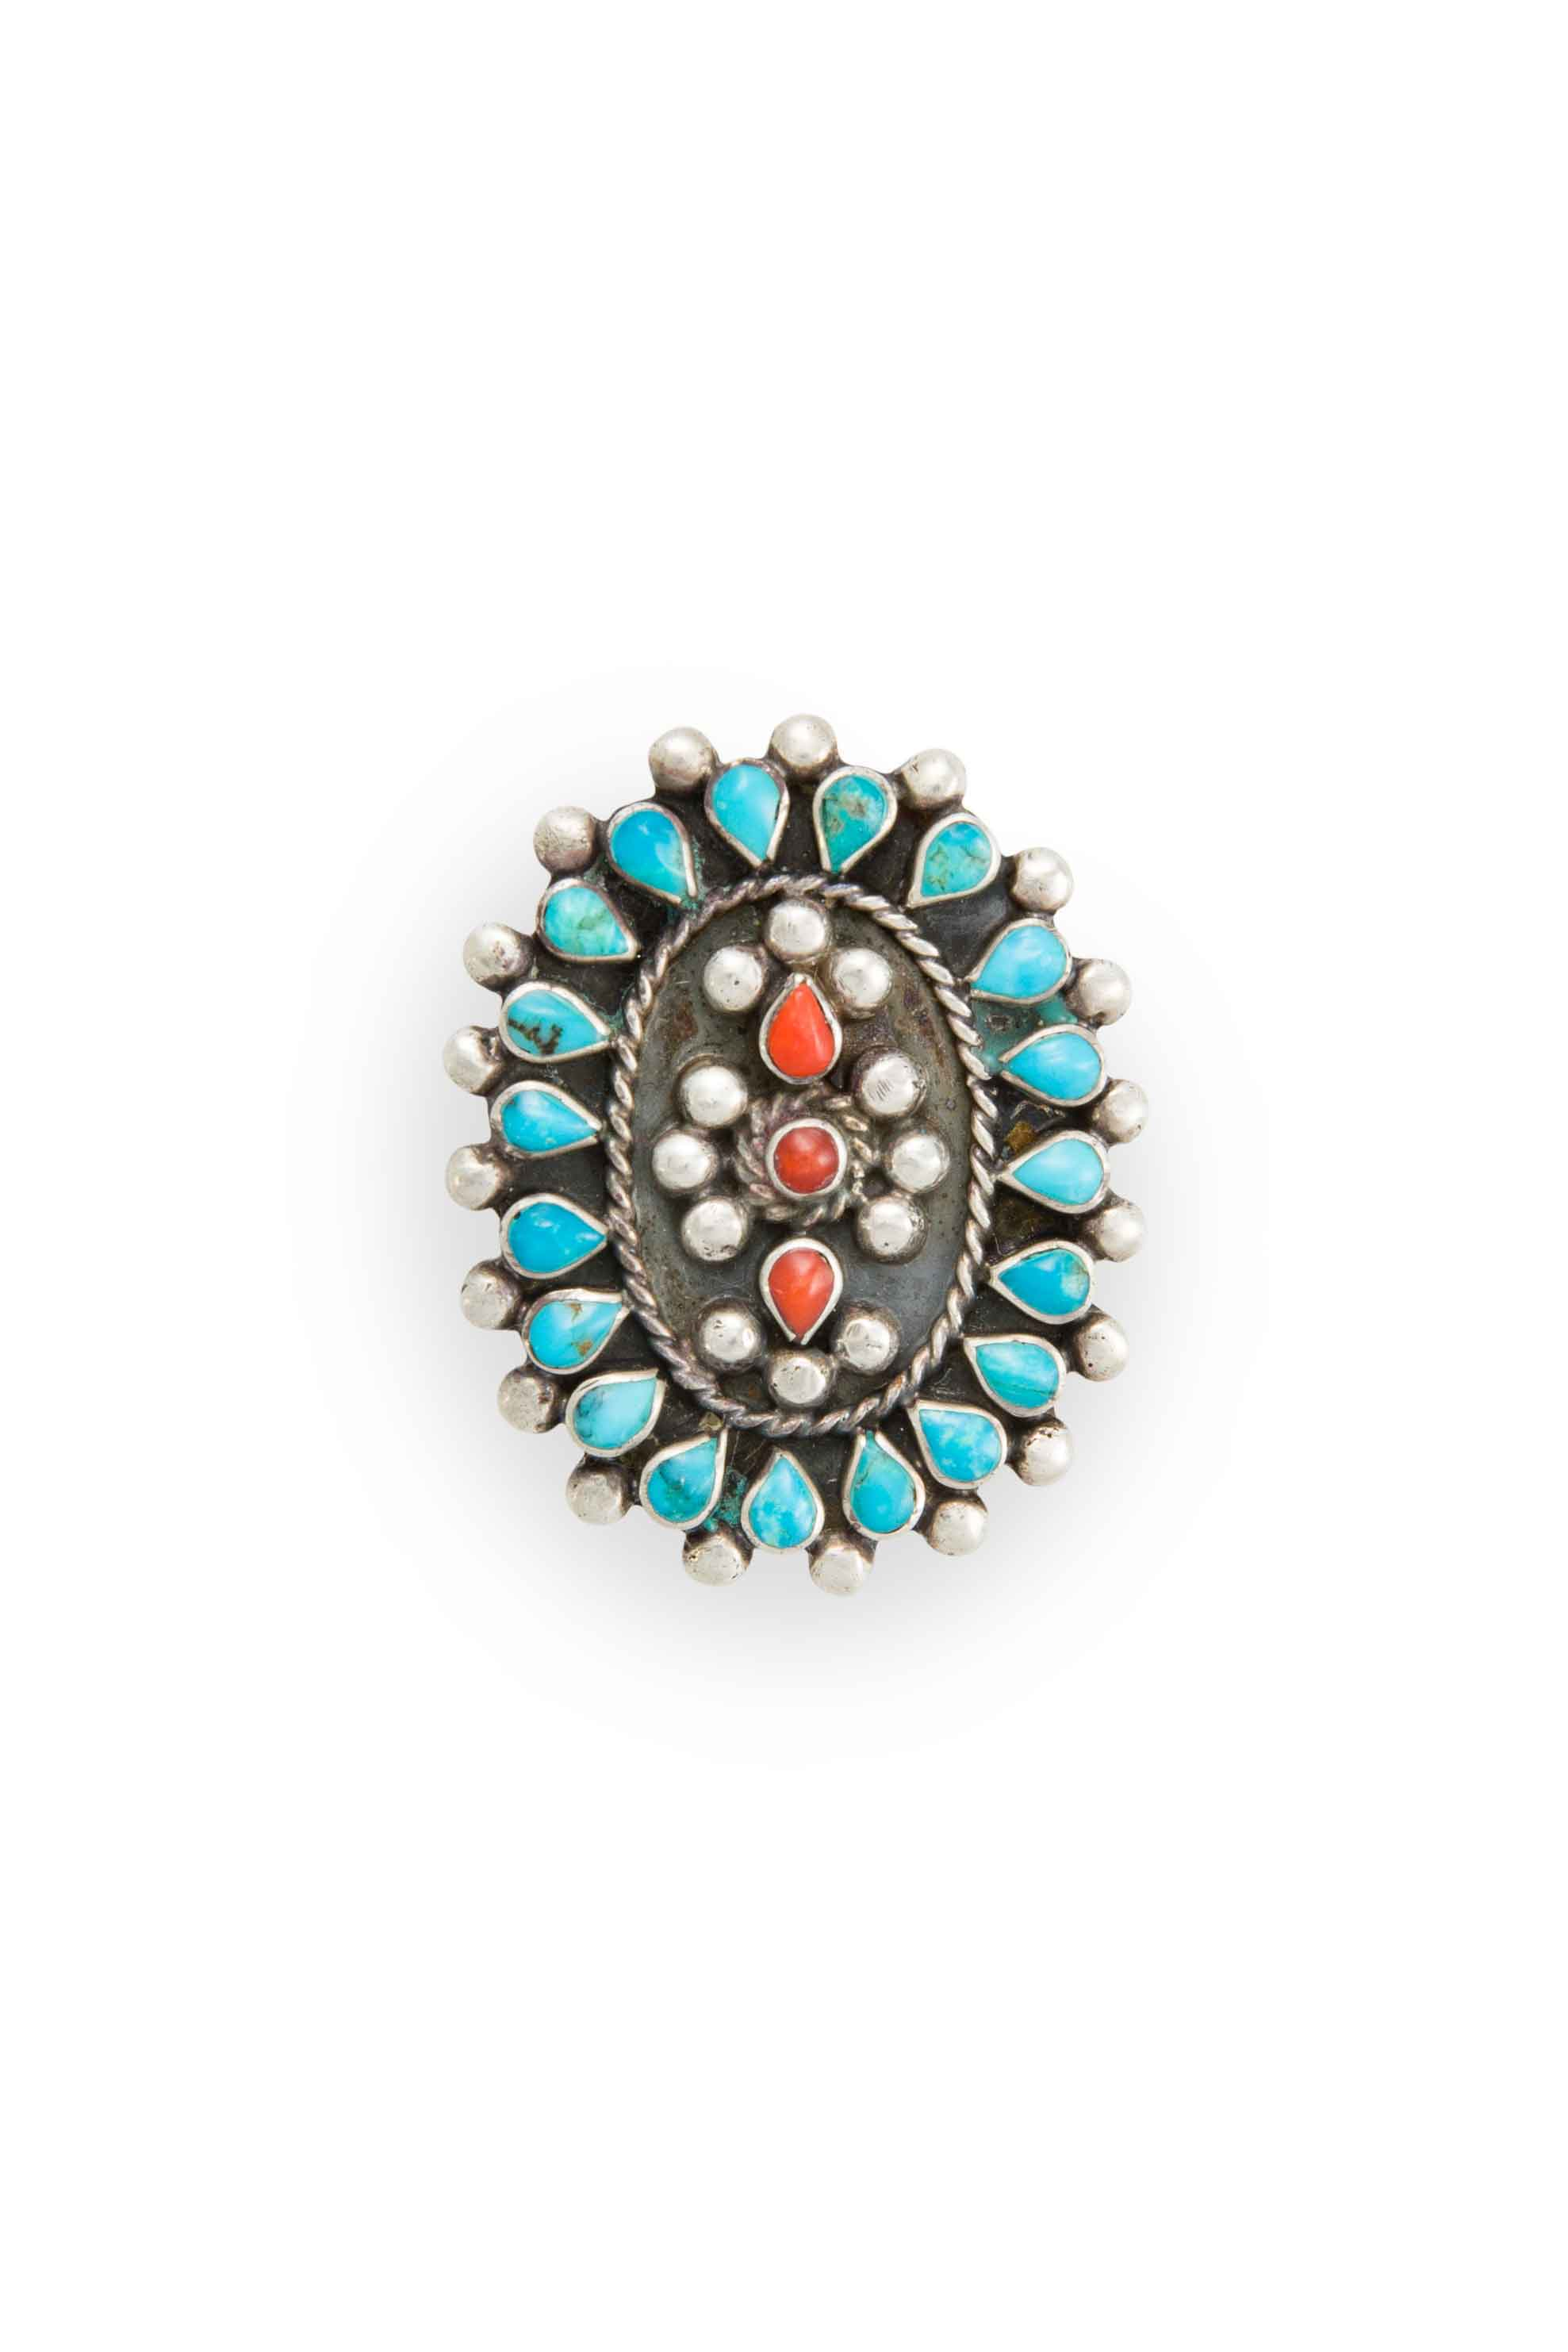 Ring, Turquoise & Coral, Cluster, Vintage, 561